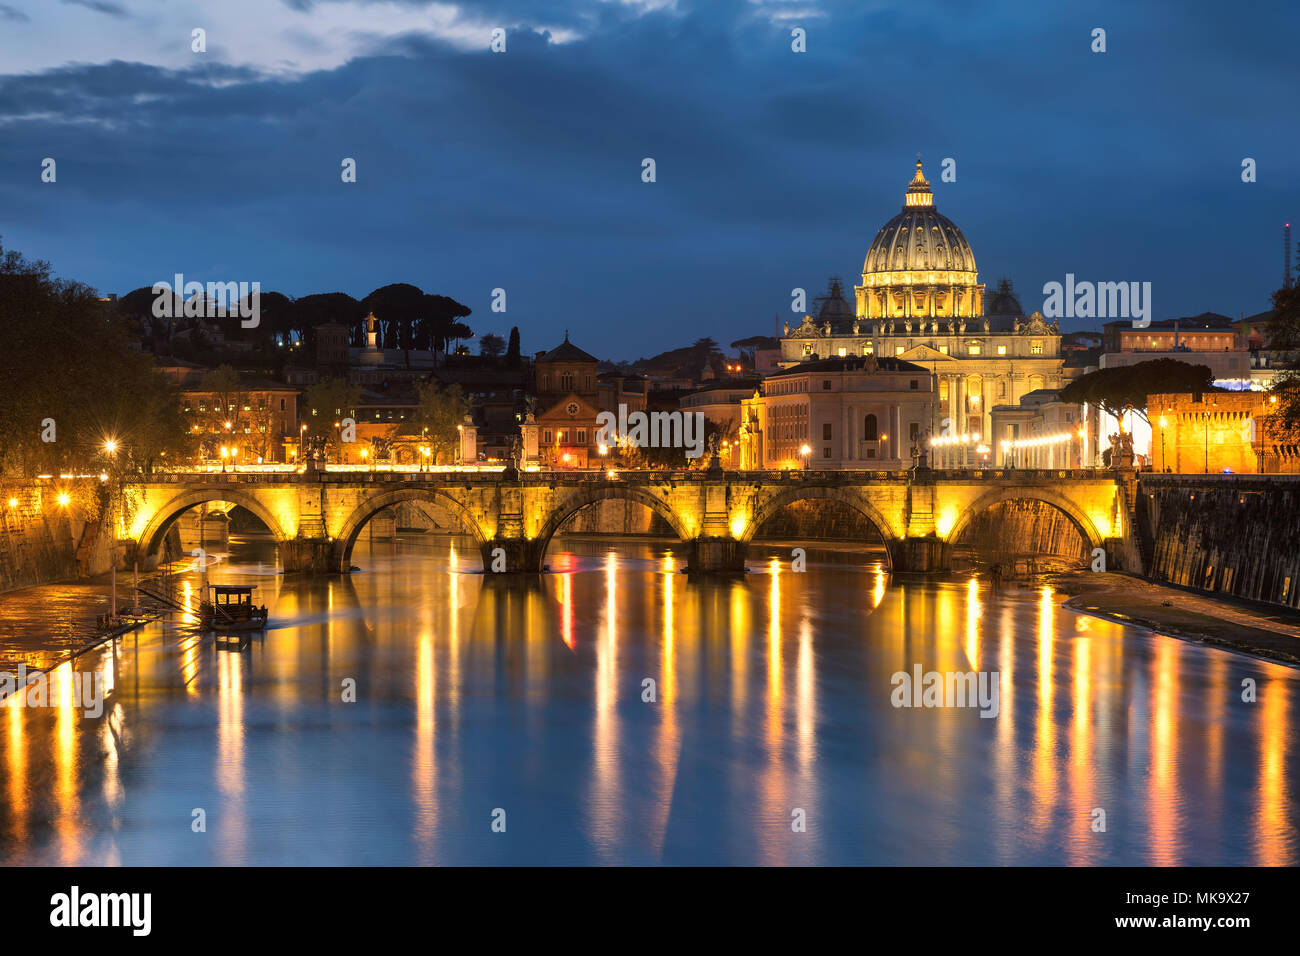 Night View at Tiber and St. Peter's cathedral in Rome, Italy. - Stock Image